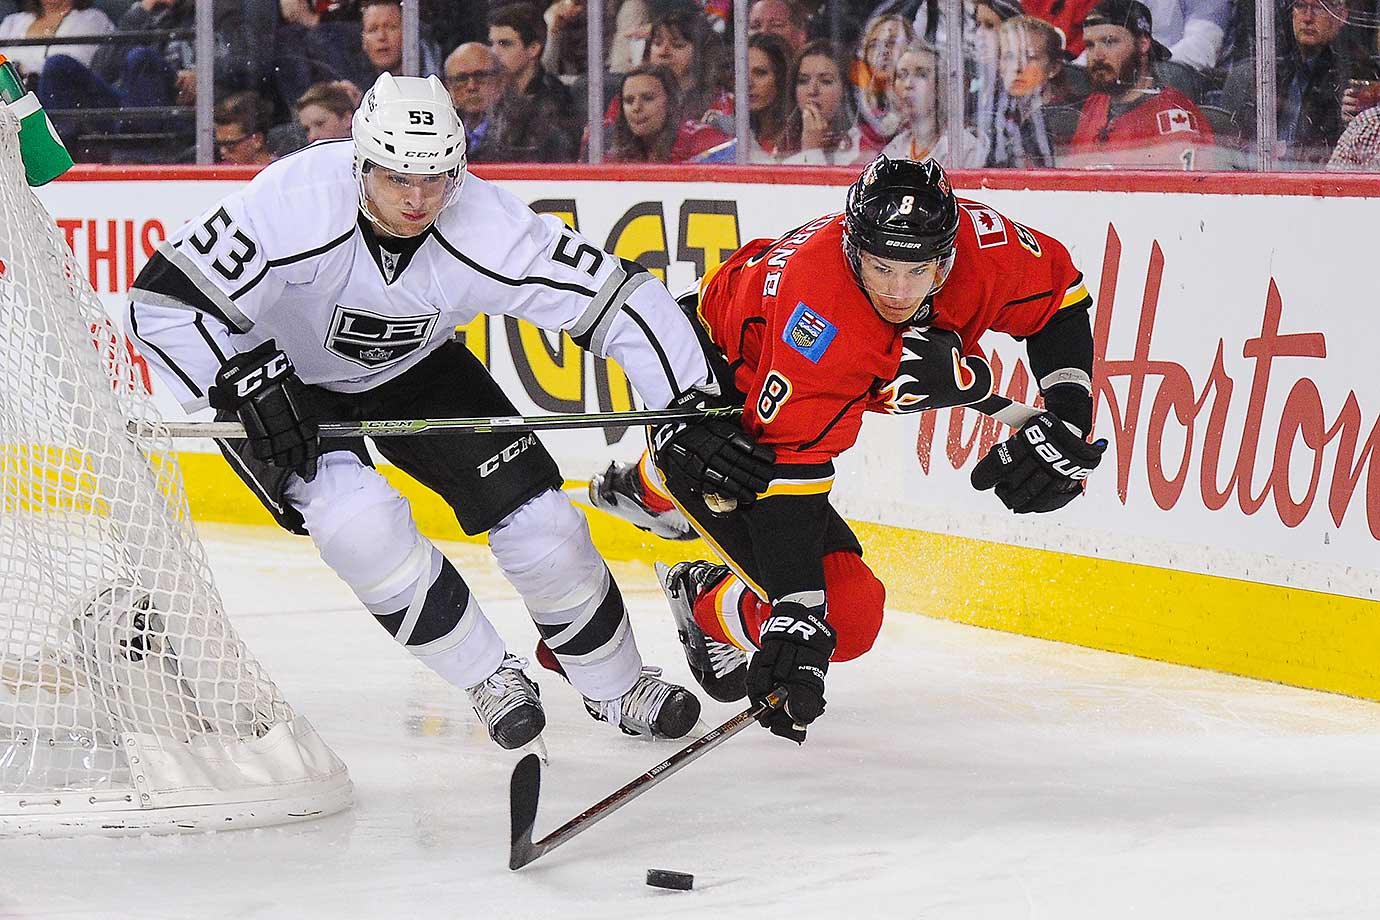 Joe Colborne of the Calgary Flames flies in the air while chasing the puck against Kevin Gravel of the Los Angeles Kings.